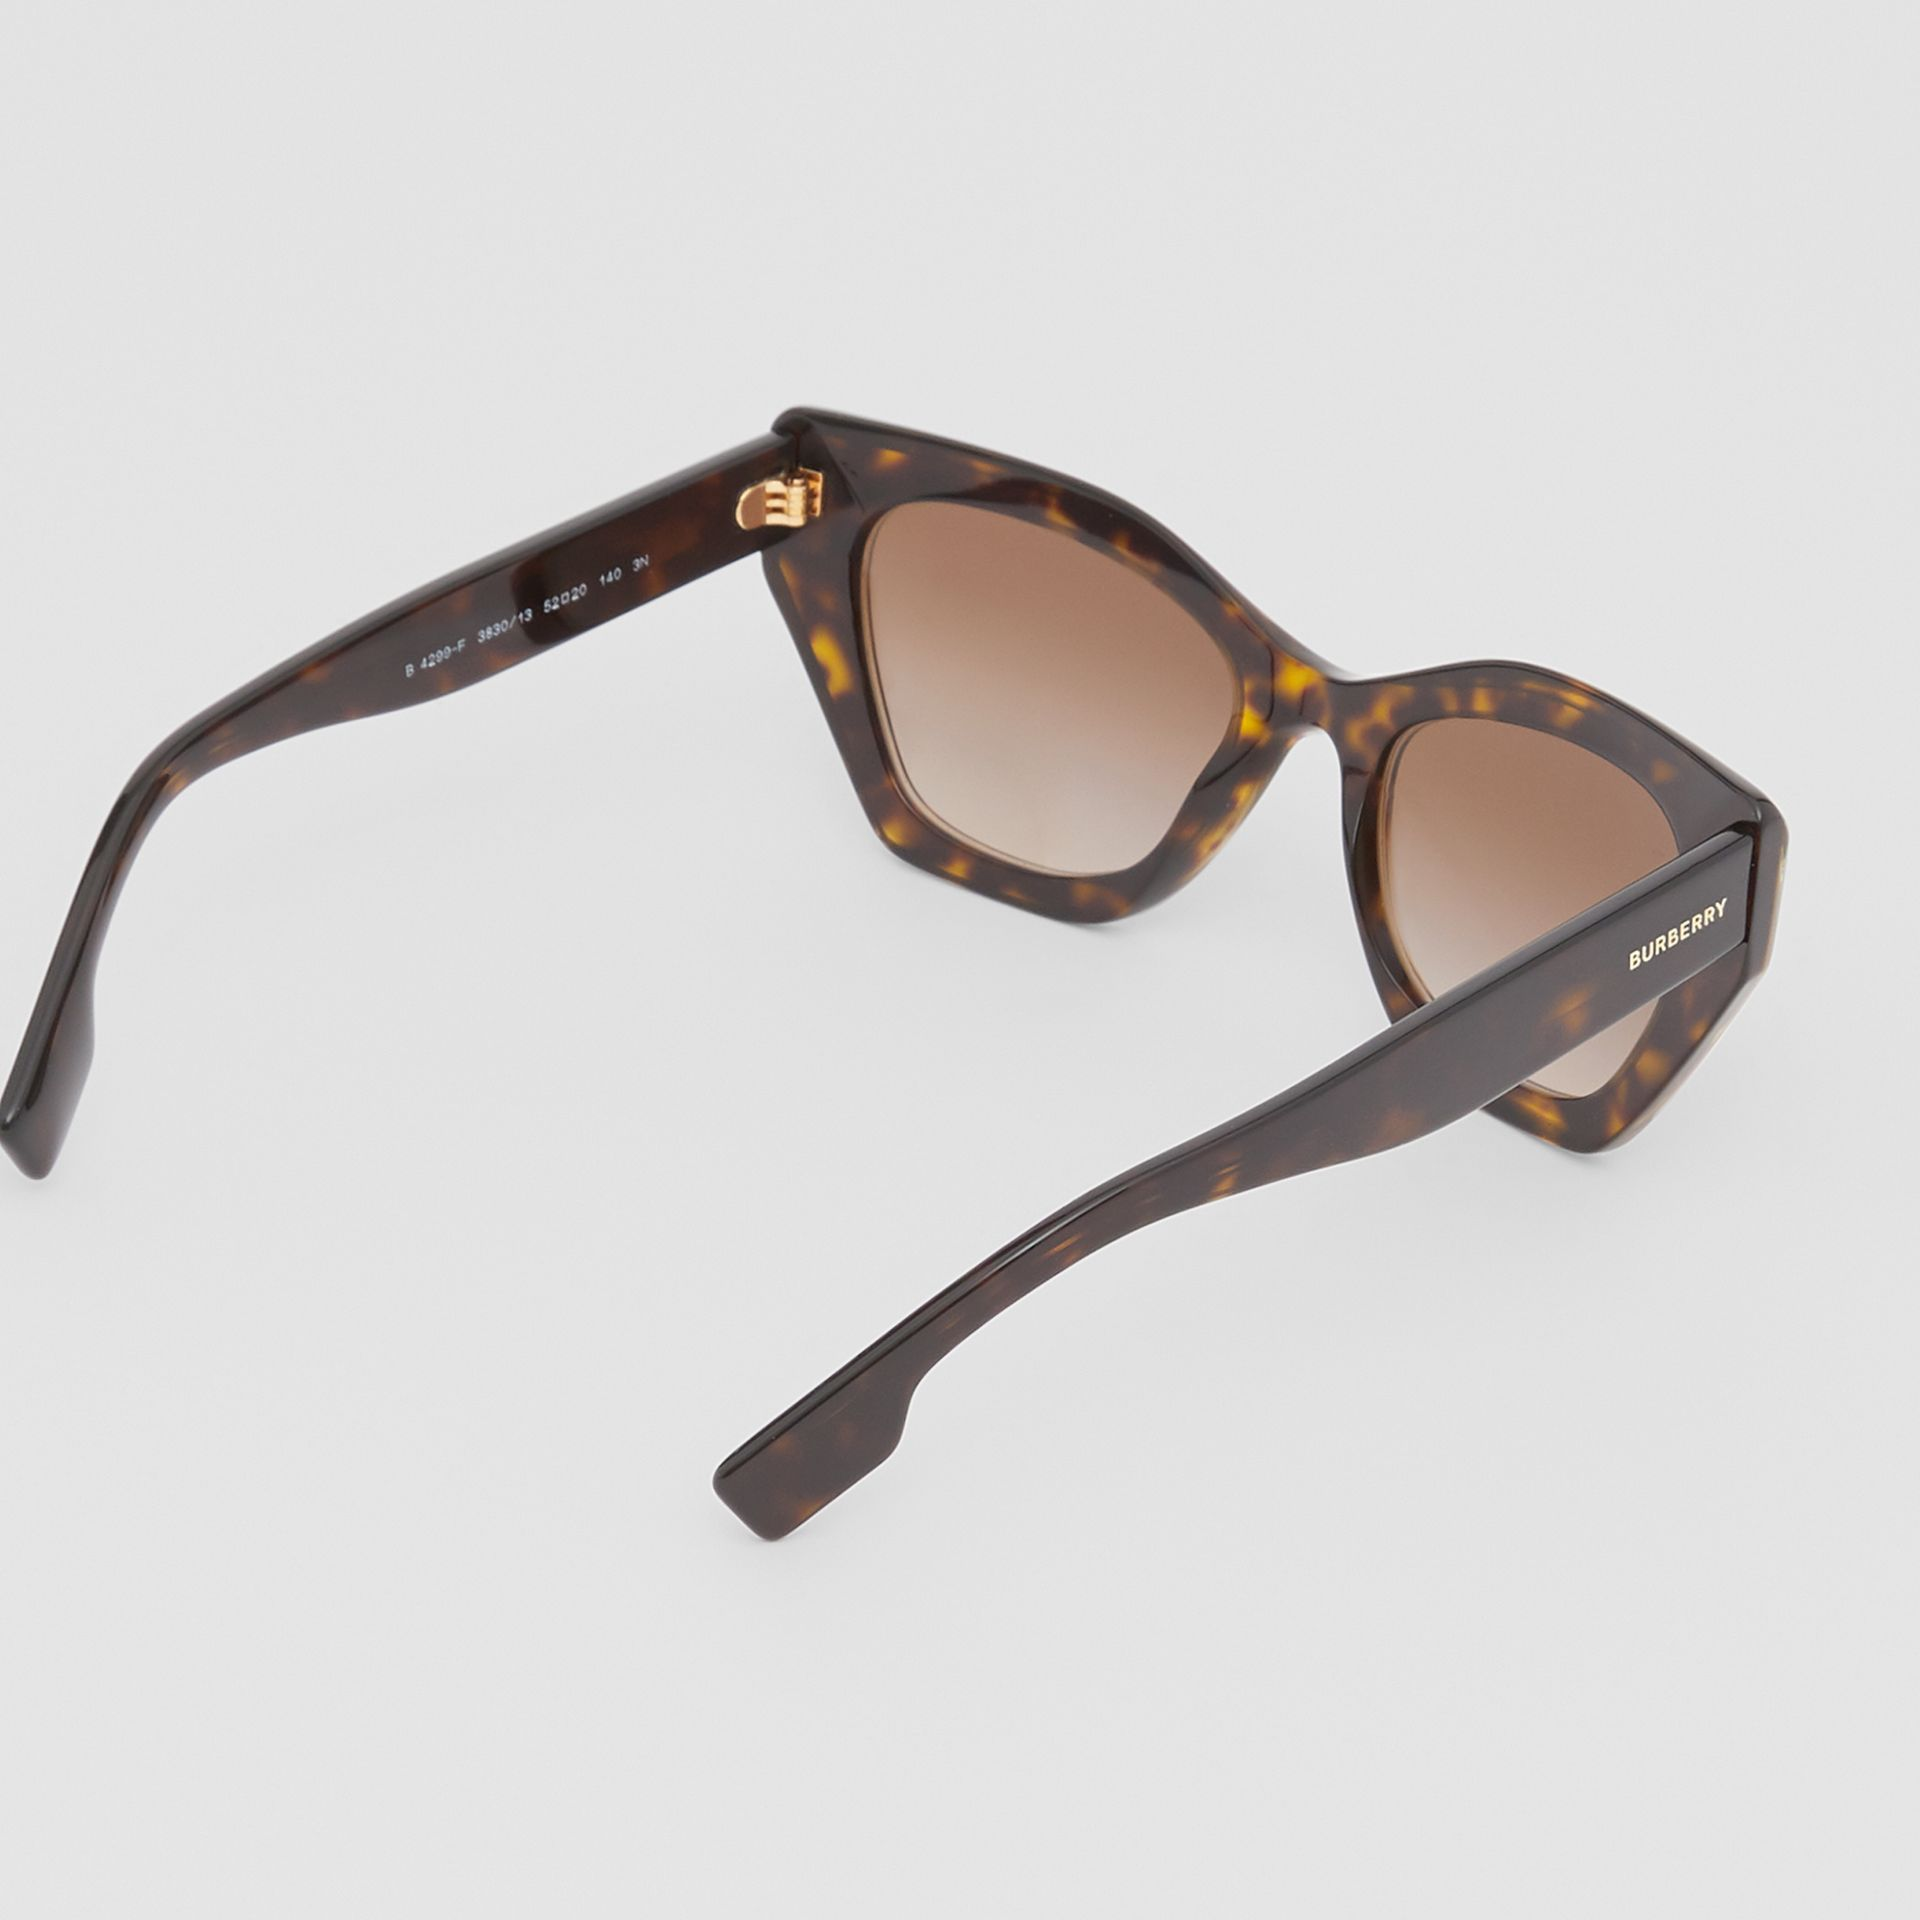 Butterfly Frame Sunglasses in Tortoiseshell - Women | Burberry Canada - gallery image 4